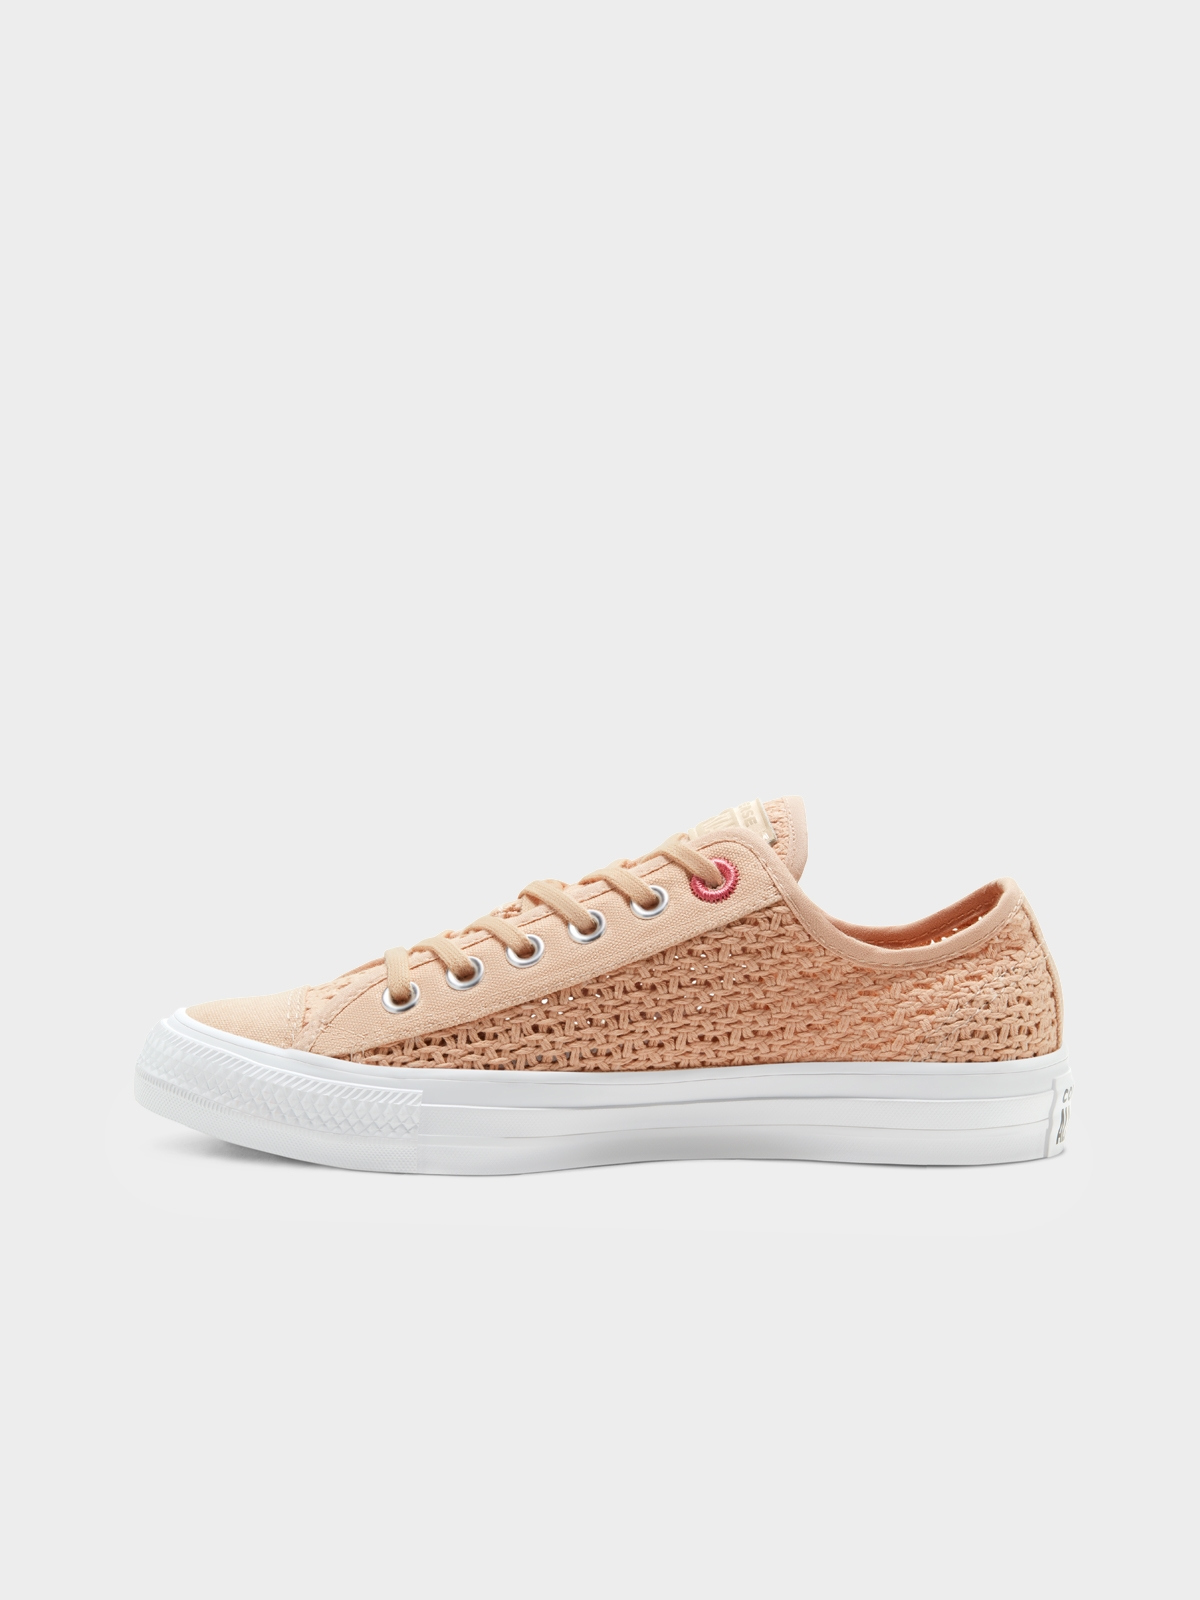 Converse Chuck Taylor All Star Shimmer Sneakers Nude Pi